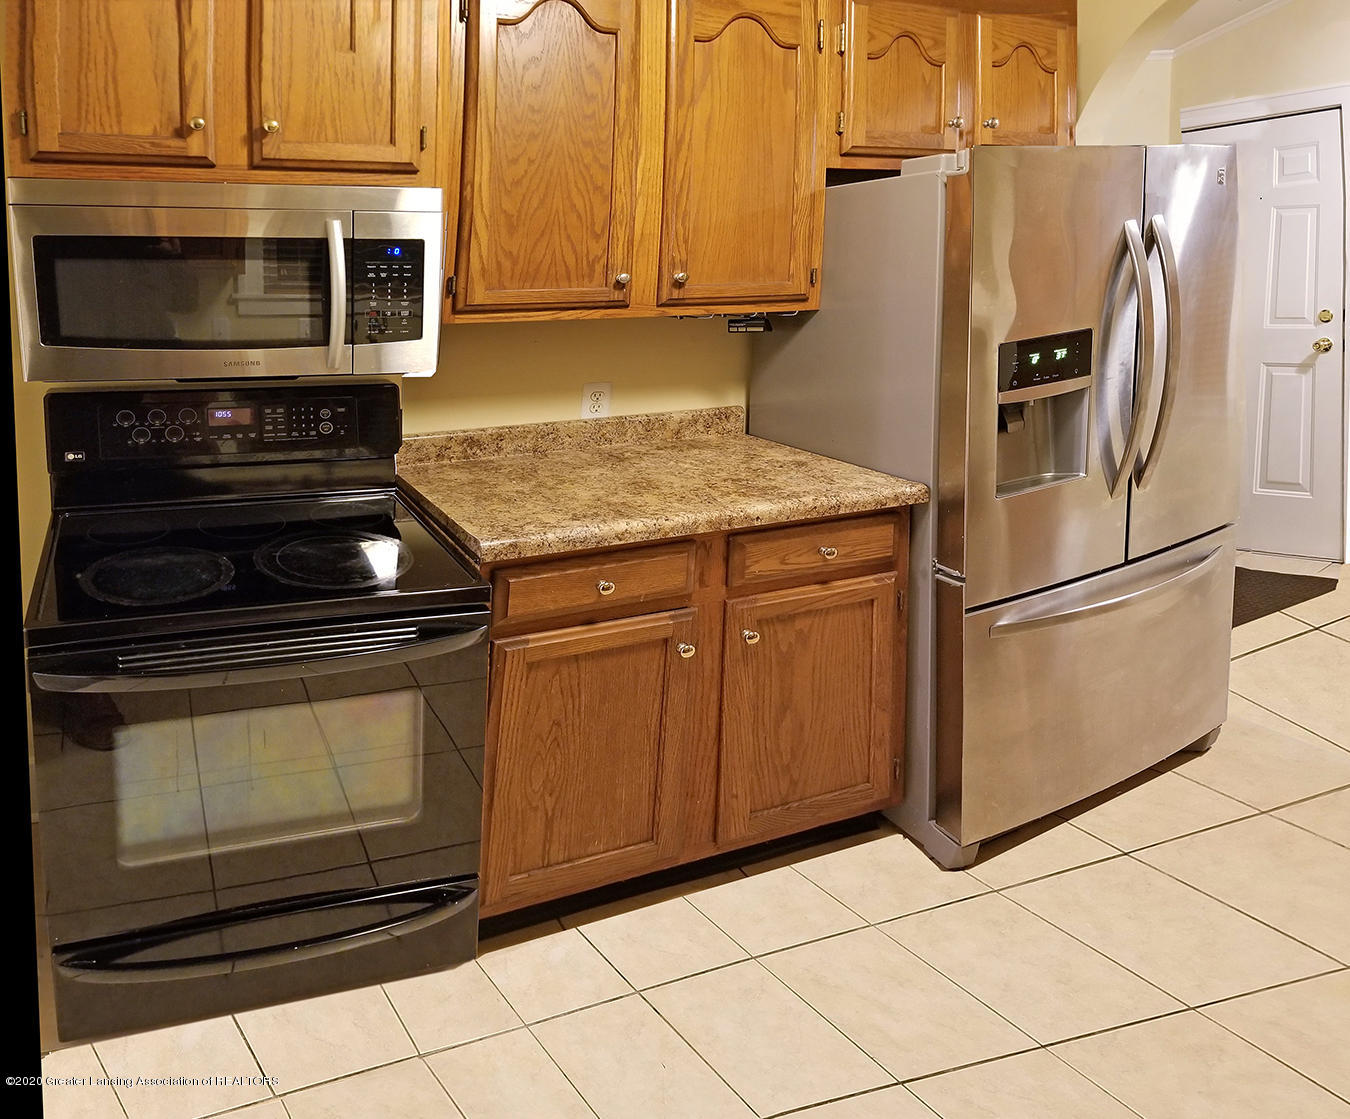 2208 Clifton Ave - Kitchen (View 2) - 10